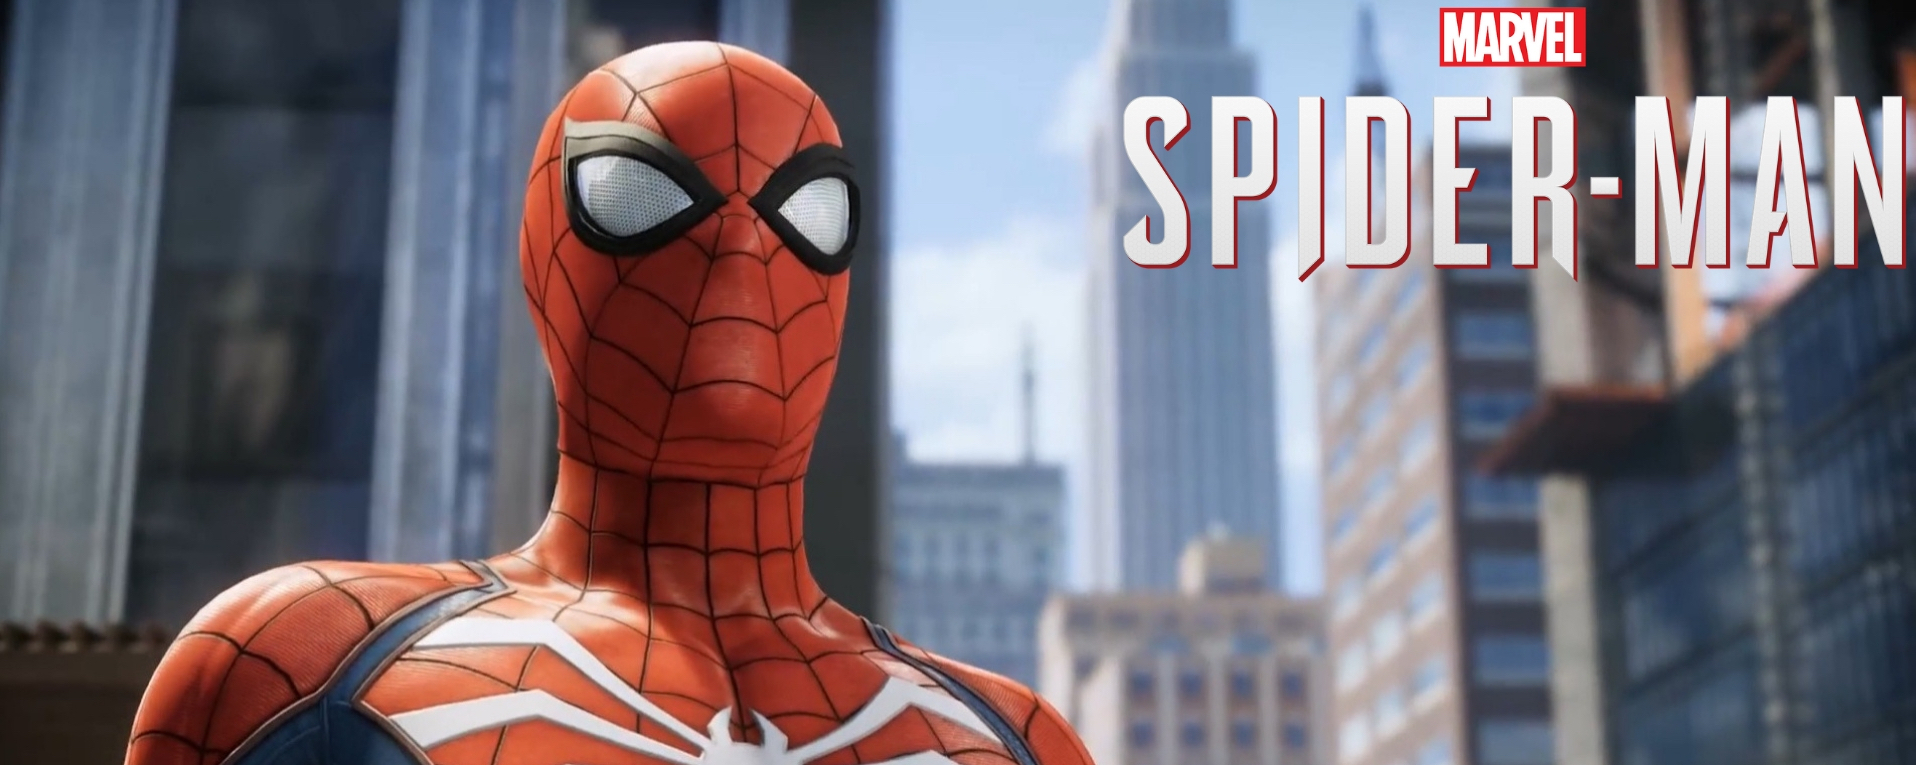 Test Spider-Man PS4 - Image 1